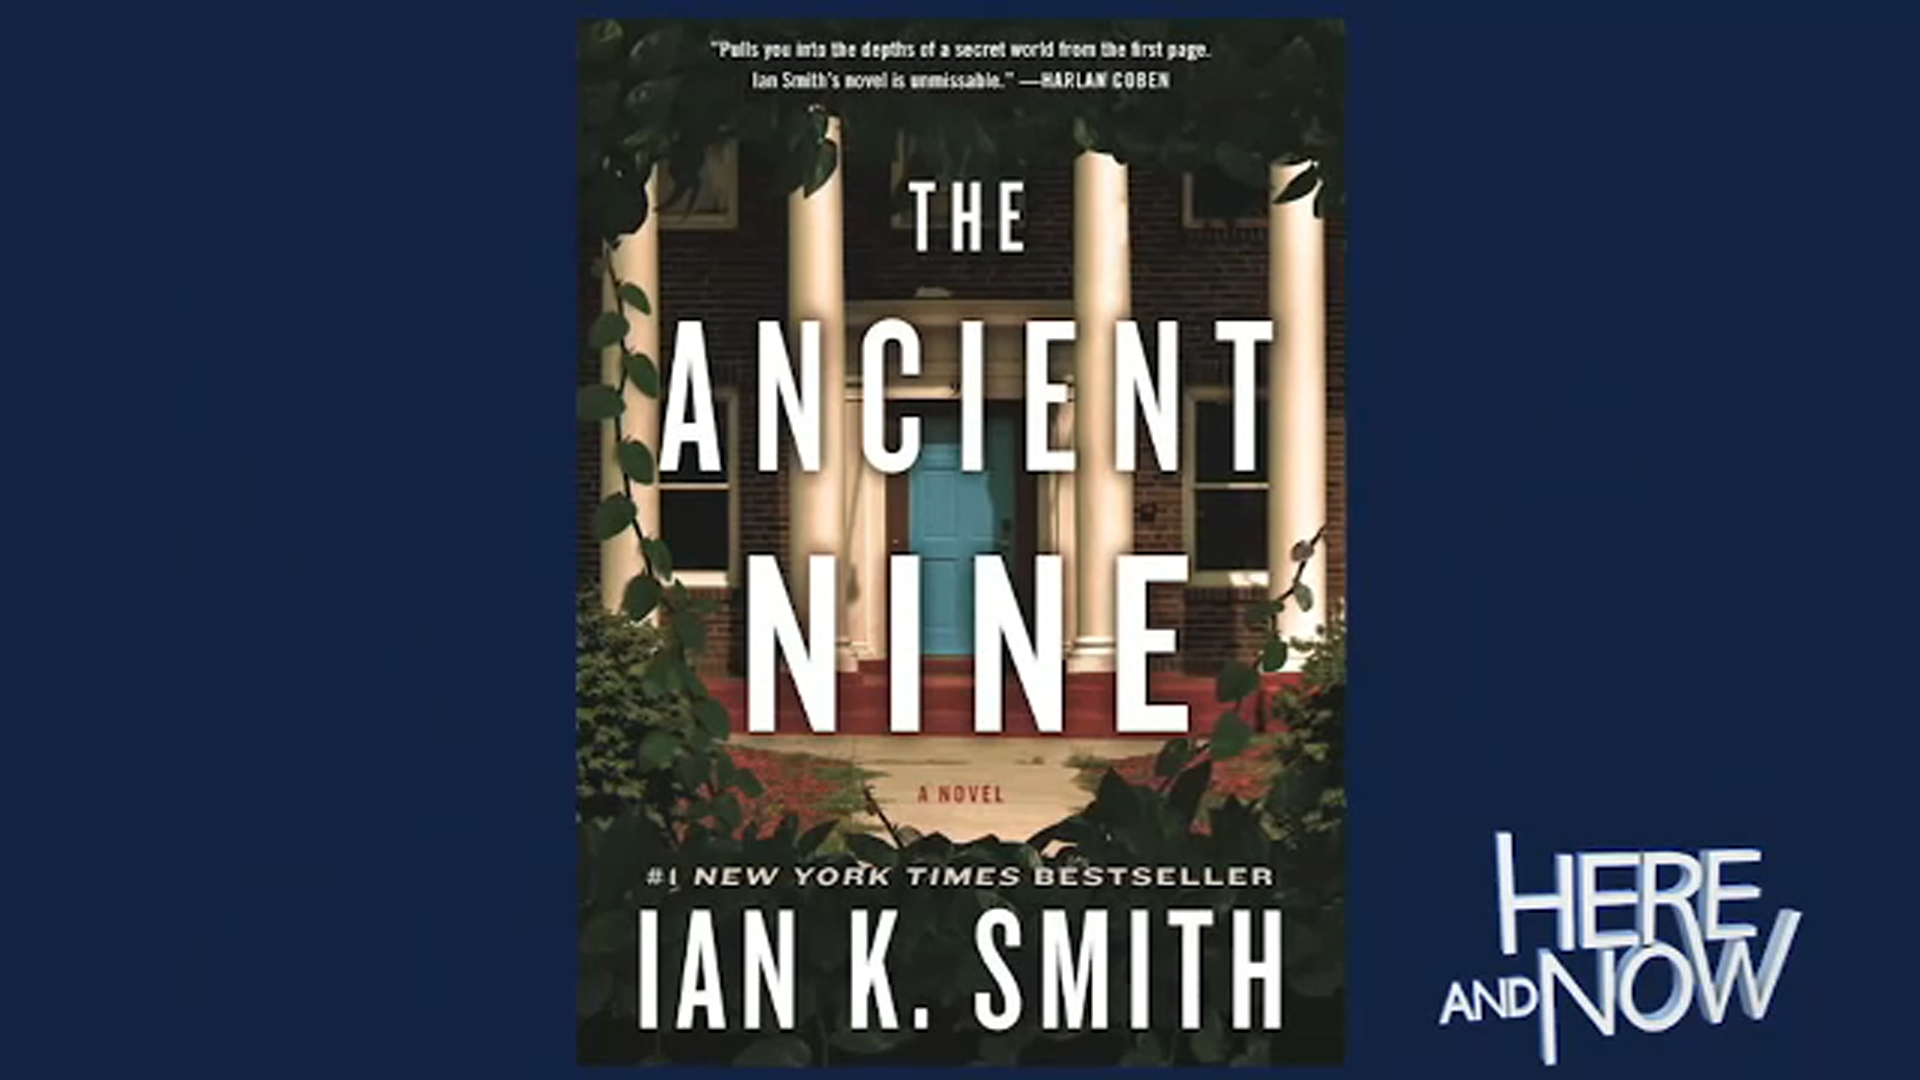 The new book  The Ancient Nine is a thriller based on his experiences in one of Harvards elite secret societies.